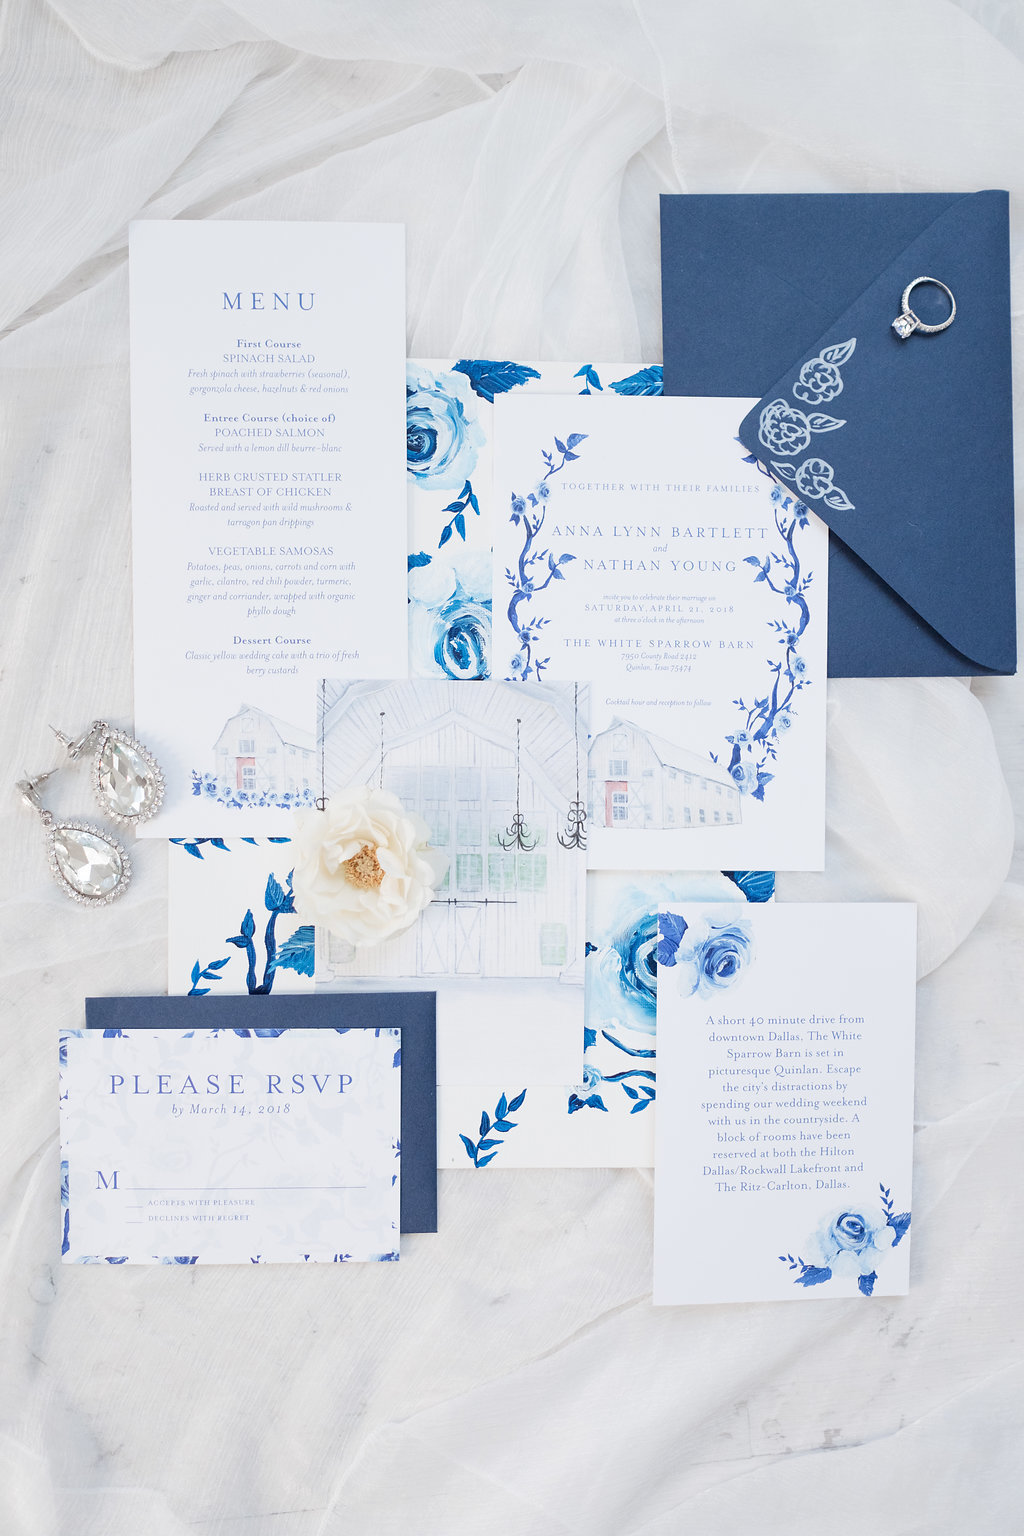 White Sparrow Quinlan Texas DFW Watercolor Wedding Invitation Suite  By Brittany Branson